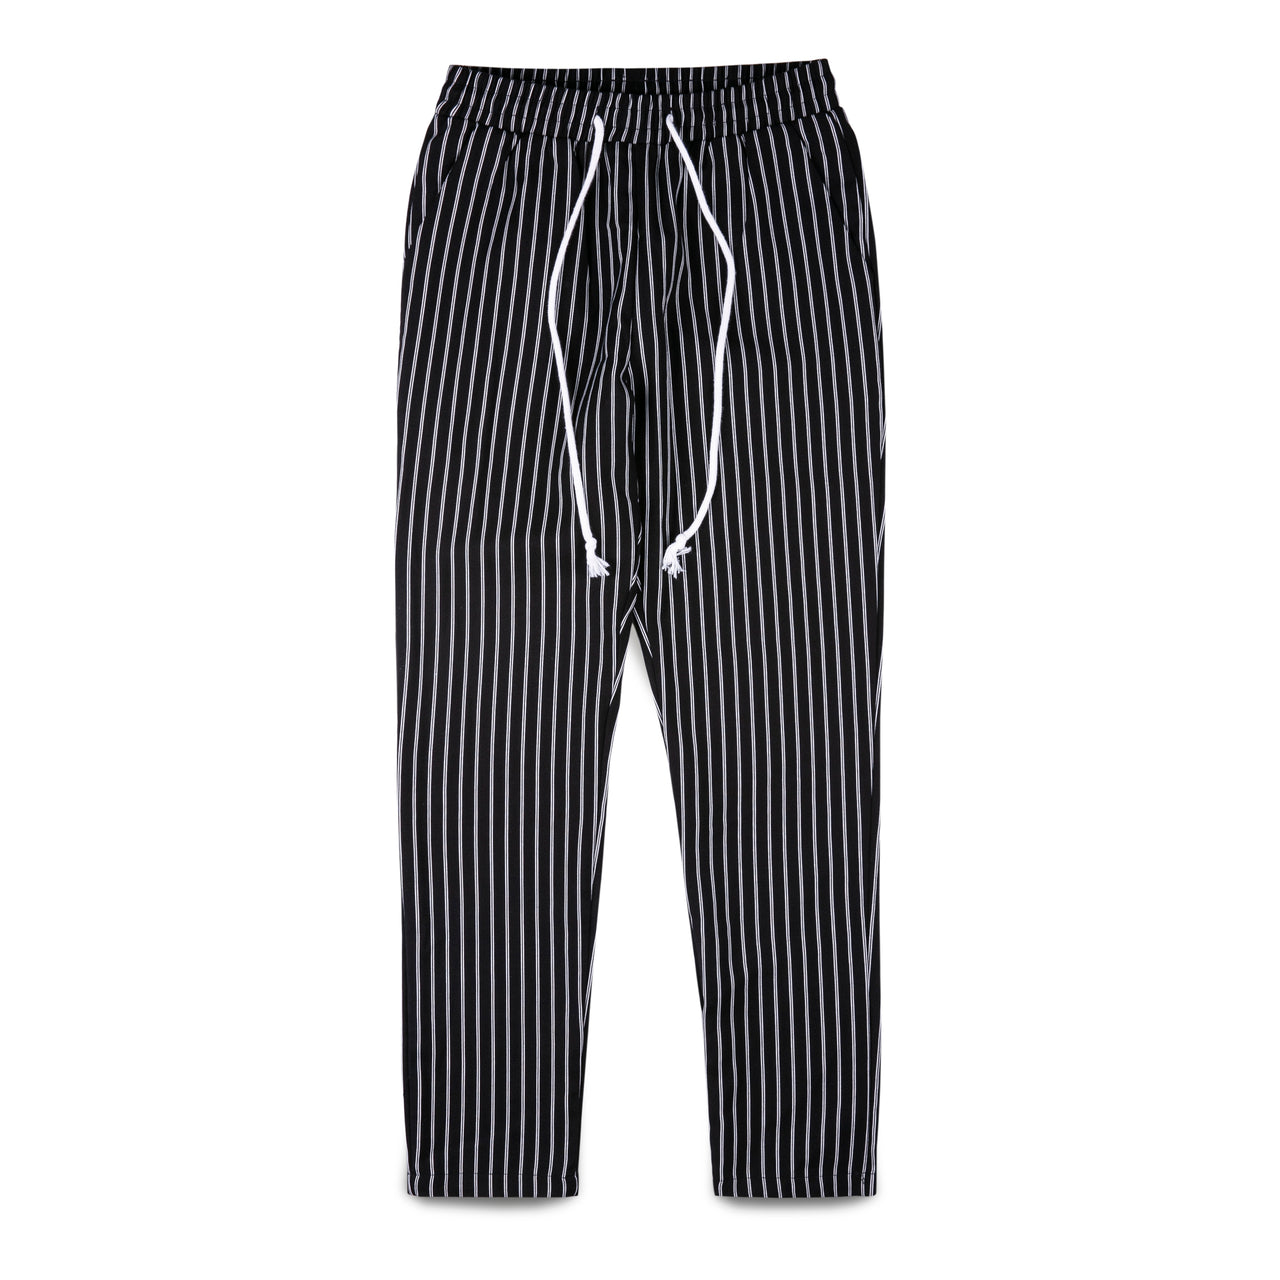 Jianfute Black & White Striped Pants